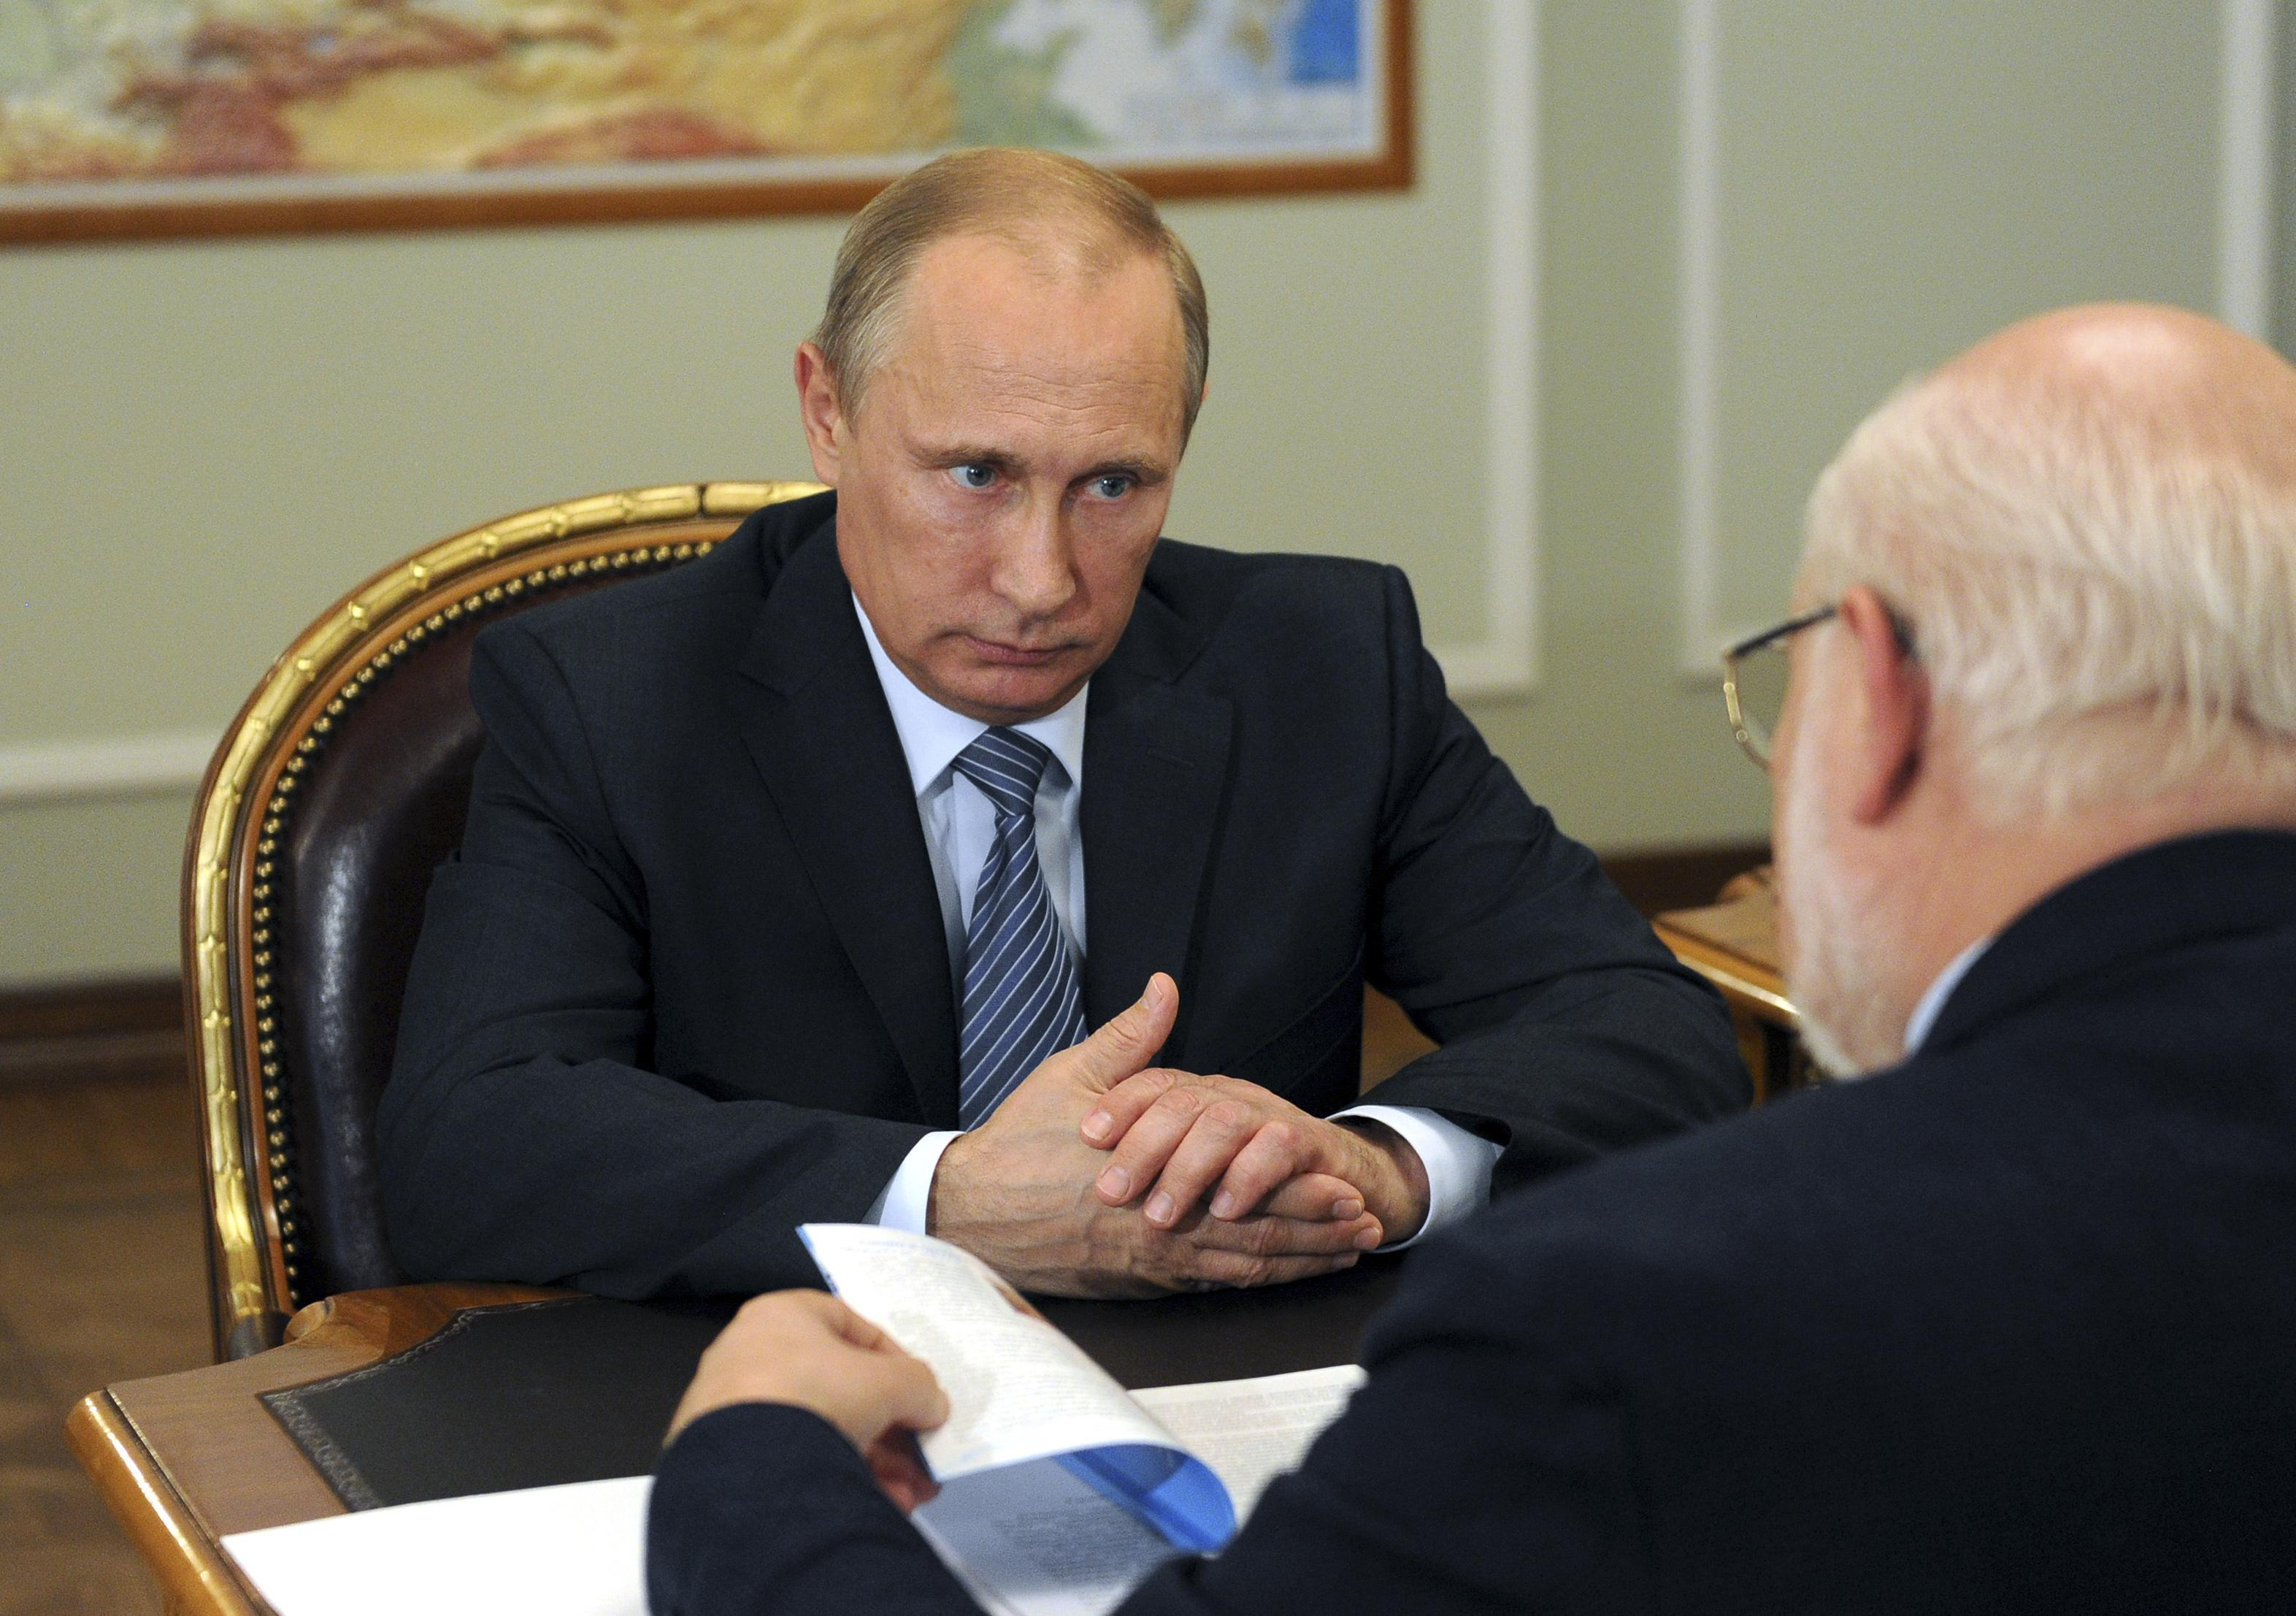 Russia's President Vladimir Putin meets with head of the presidential human rights council Mikhail Fedotov at the Novo-Ogaryovo state residence outside Moscow, July 29, 2014. Photo: Reuters